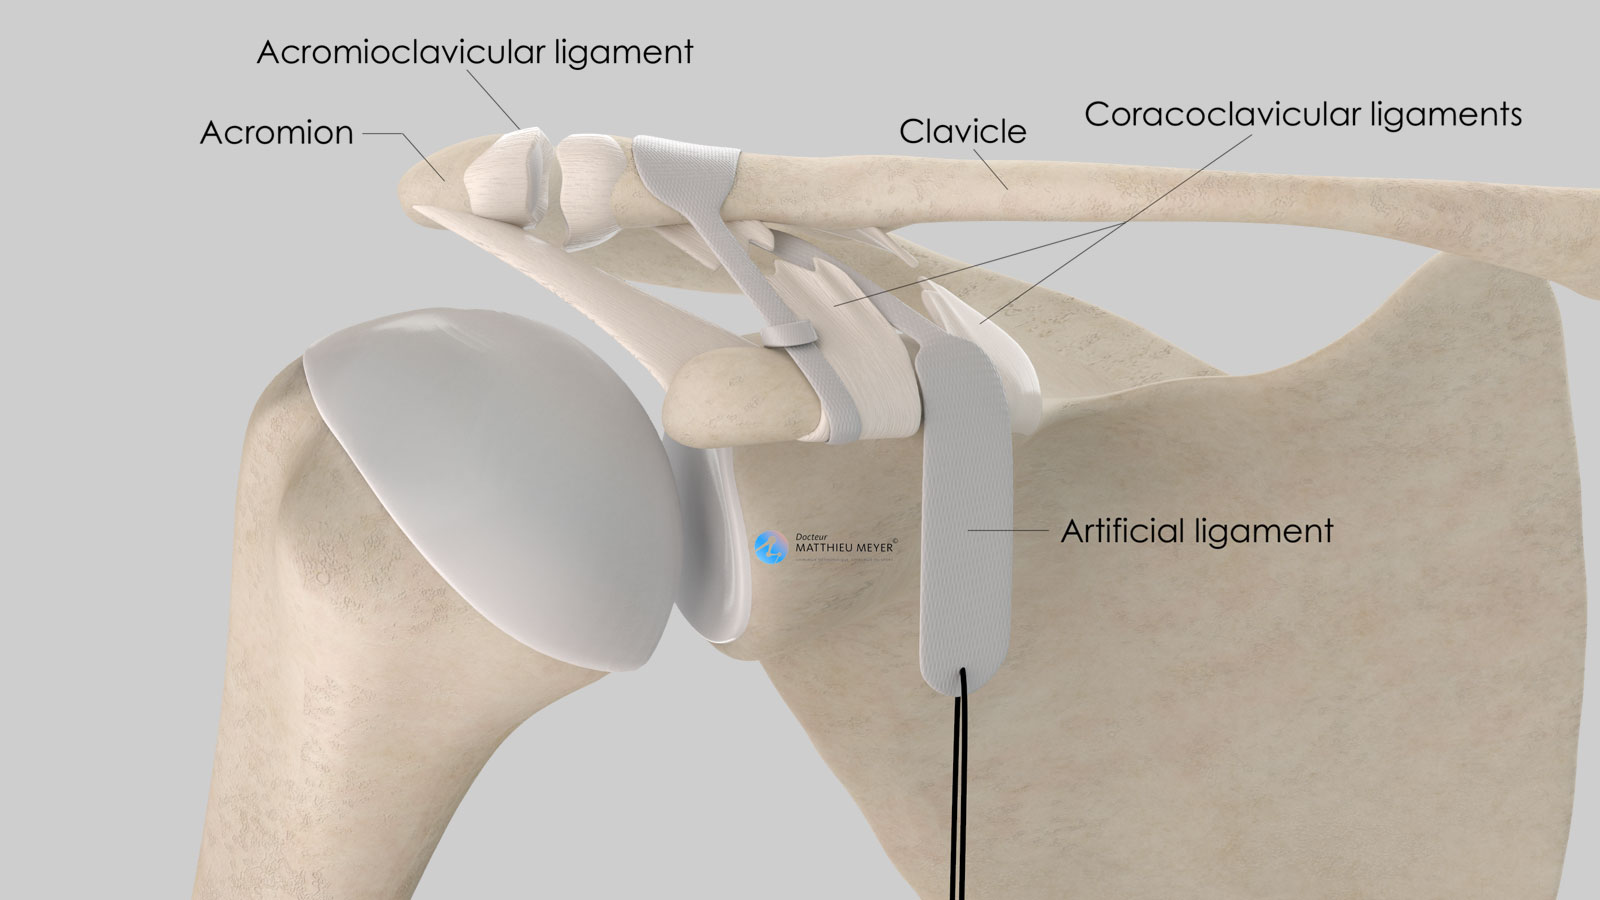 Insertion of the artificial ligament: attaching the clavicle to the coracoid (anterior view)